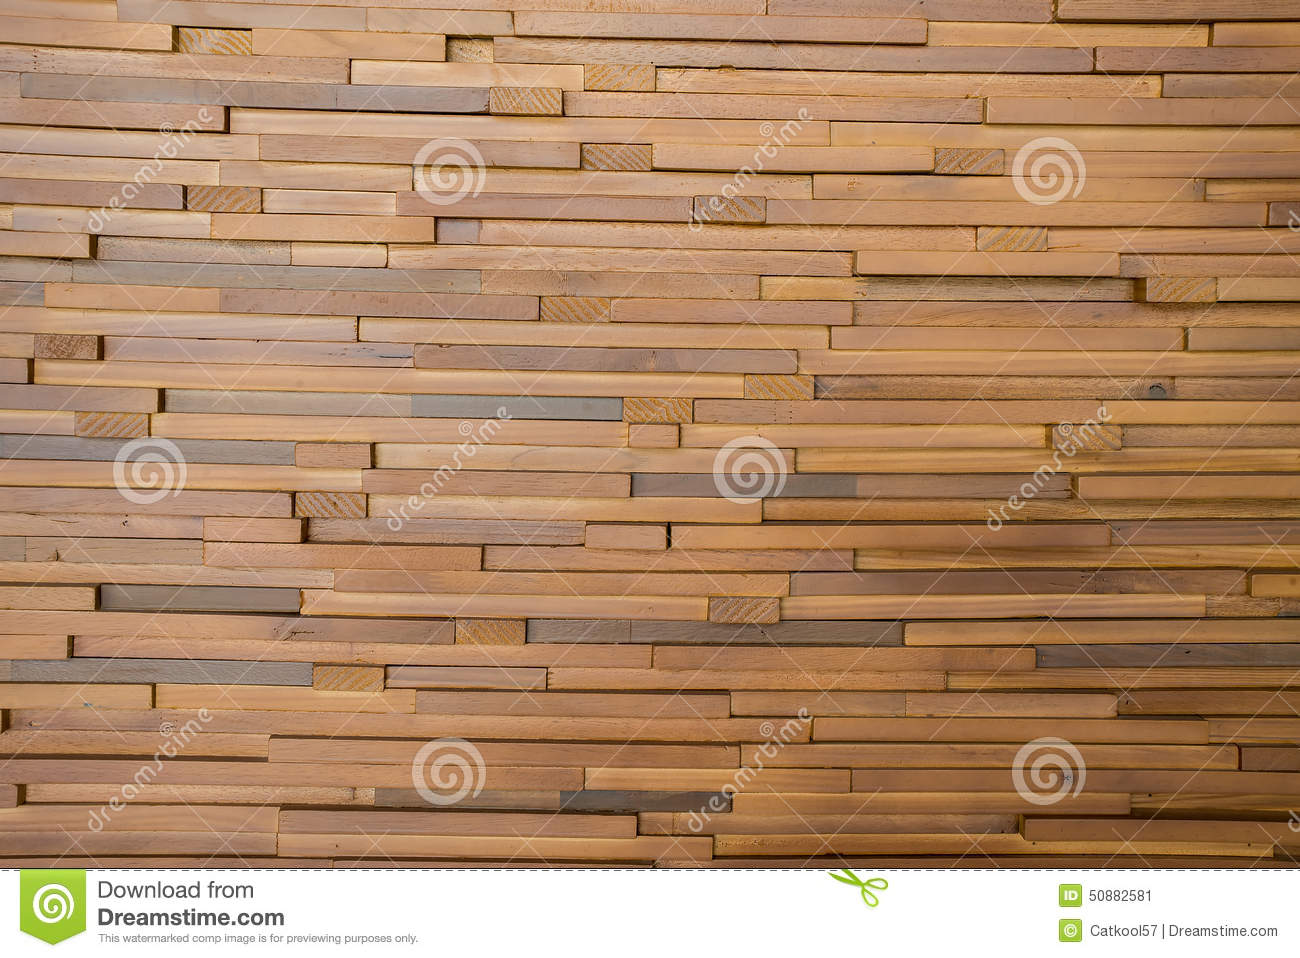 small pieces of wood together in a wall stock image image 50882581. Black Bedroom Furniture Sets. Home Design Ideas